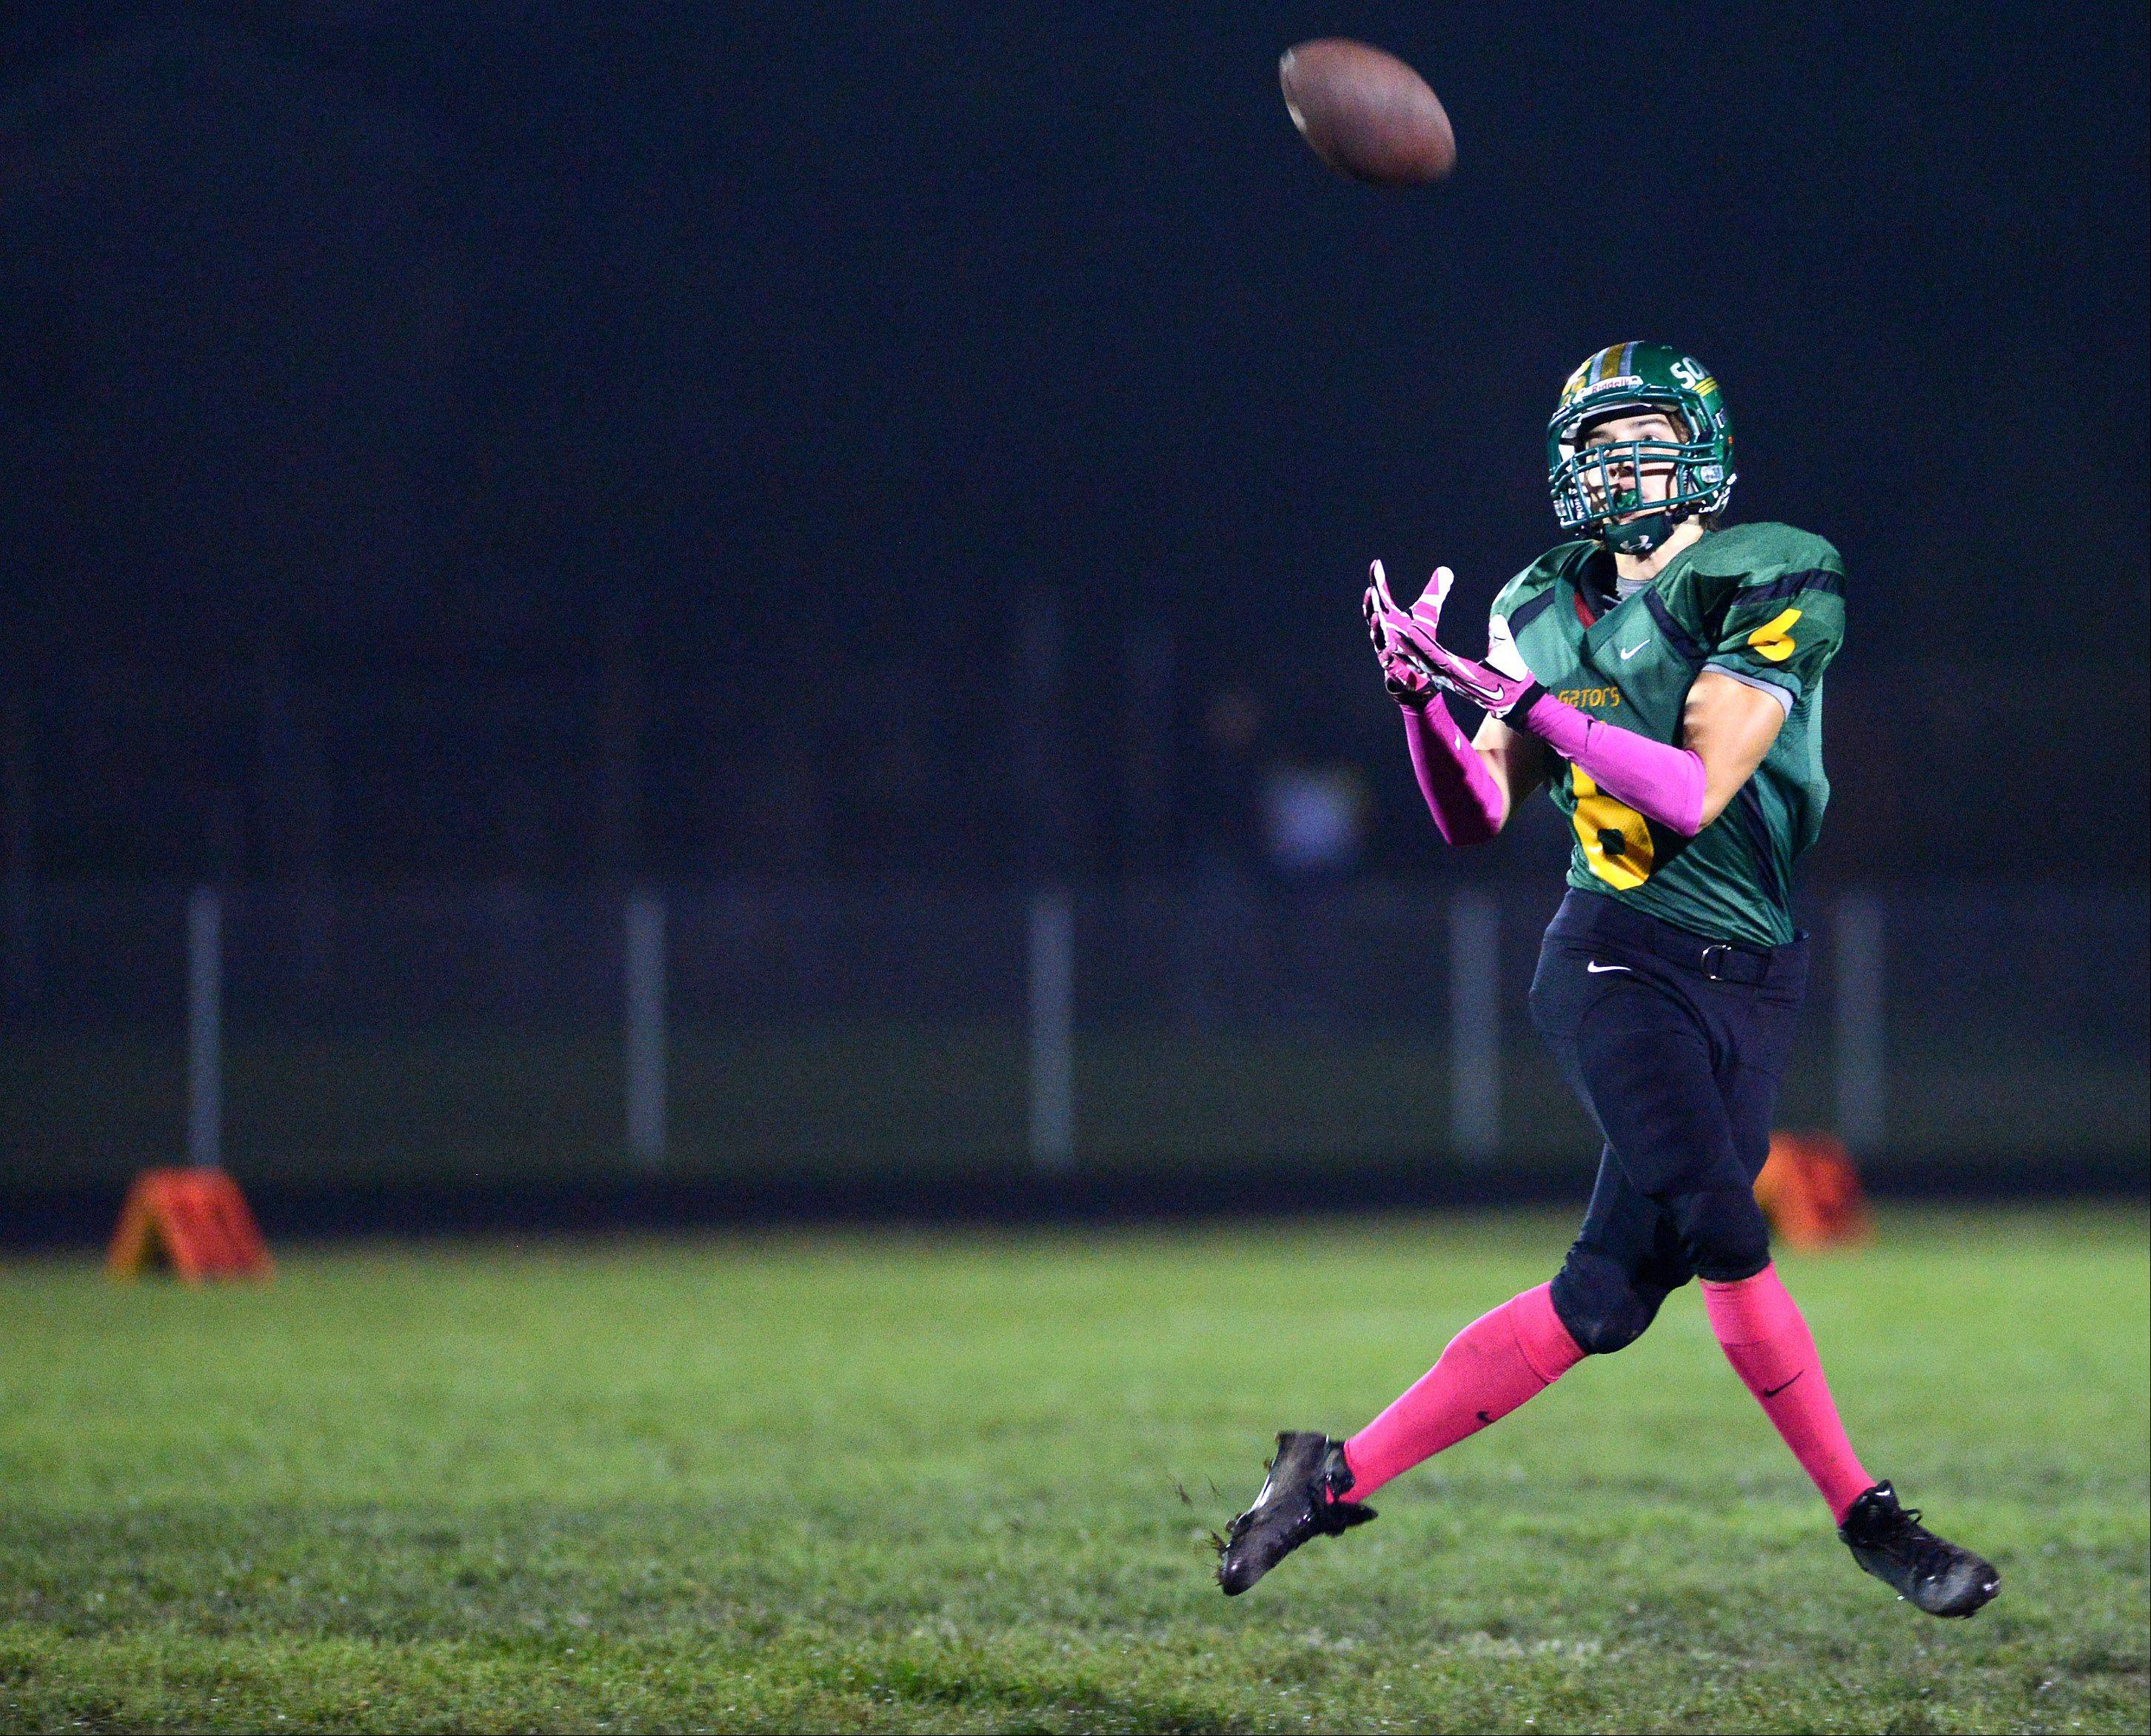 Crystal Lake South's Phil Skrzypczak is wide open as he hauls in a pass on a halfback option.